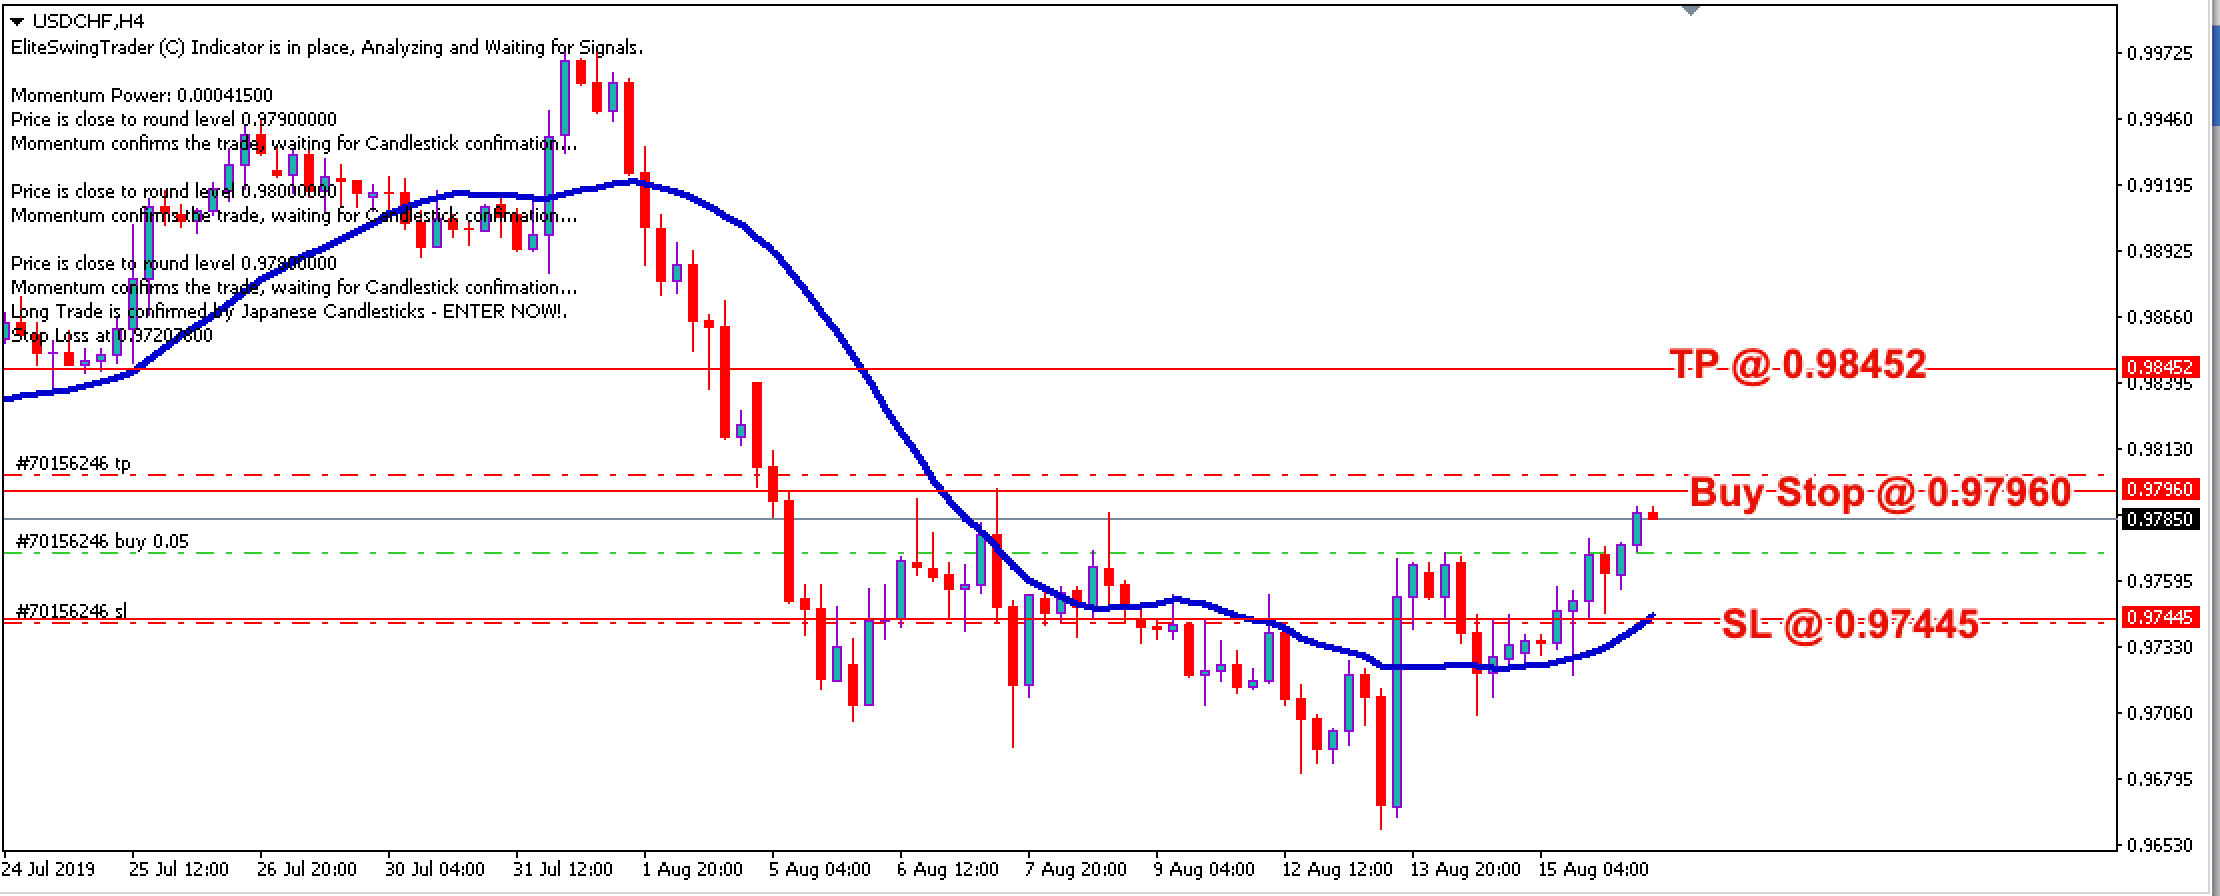 Elite Swing Trader Trade Signals USDCHF – 16th August 2019